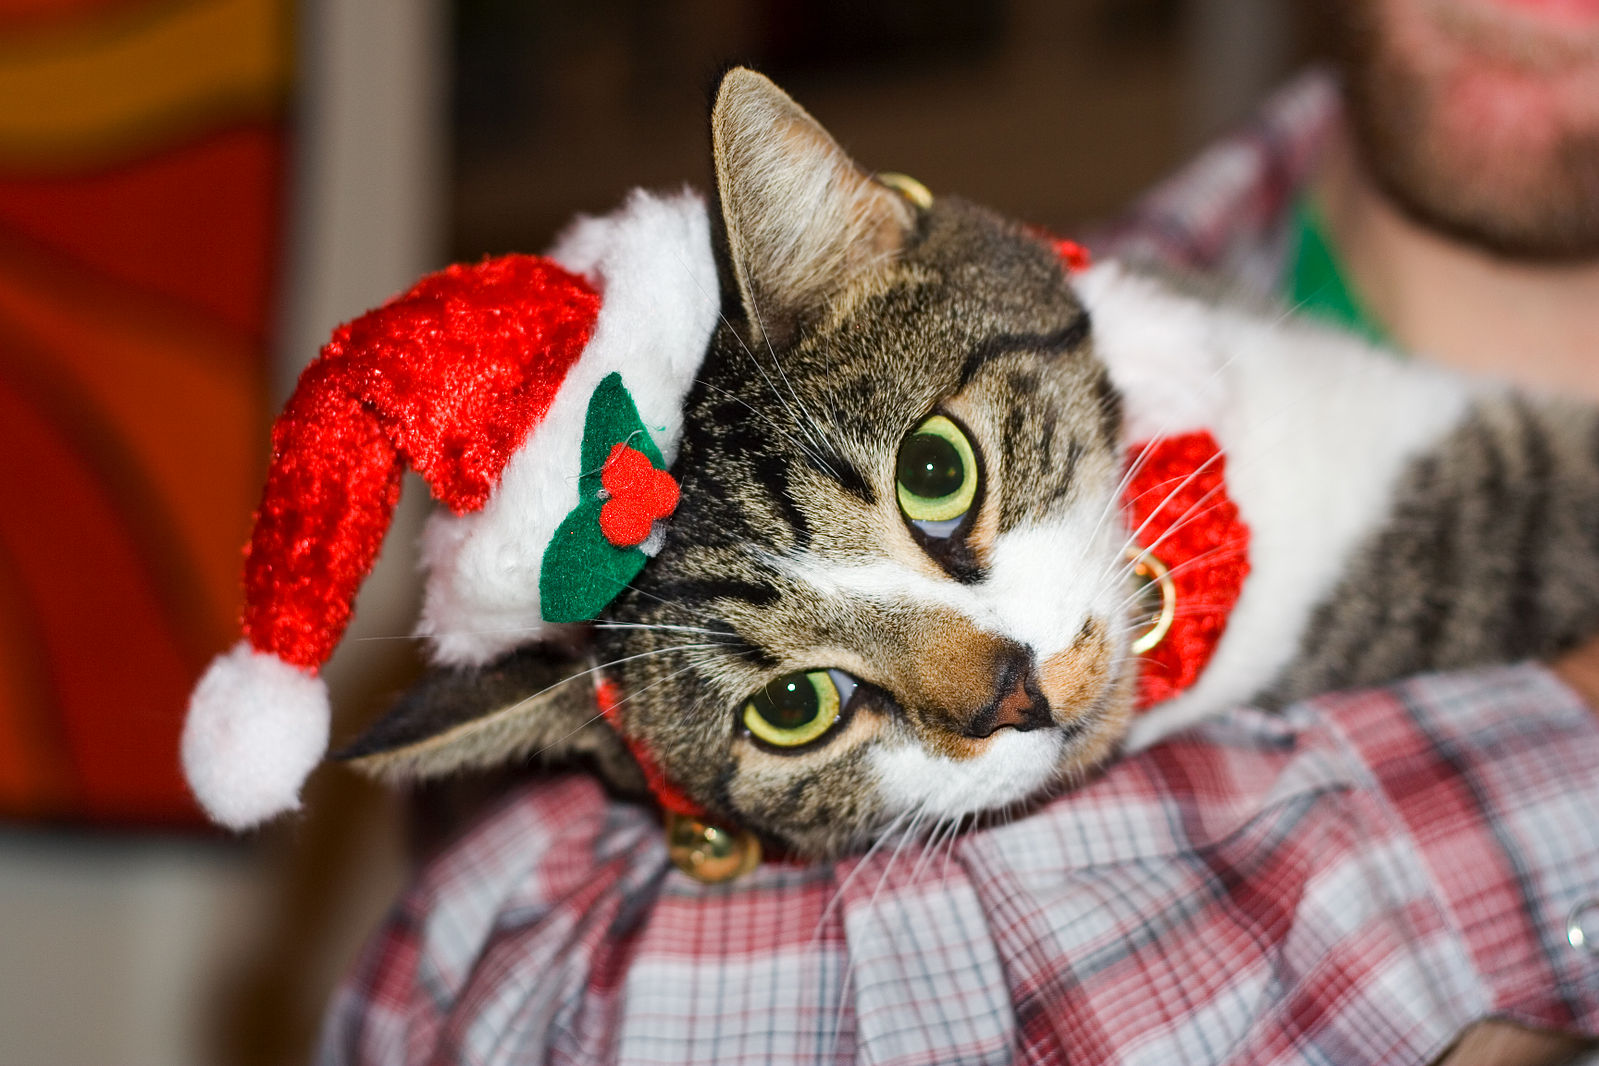 Katzenworld's Last Minute Christmas Gift Ideas!